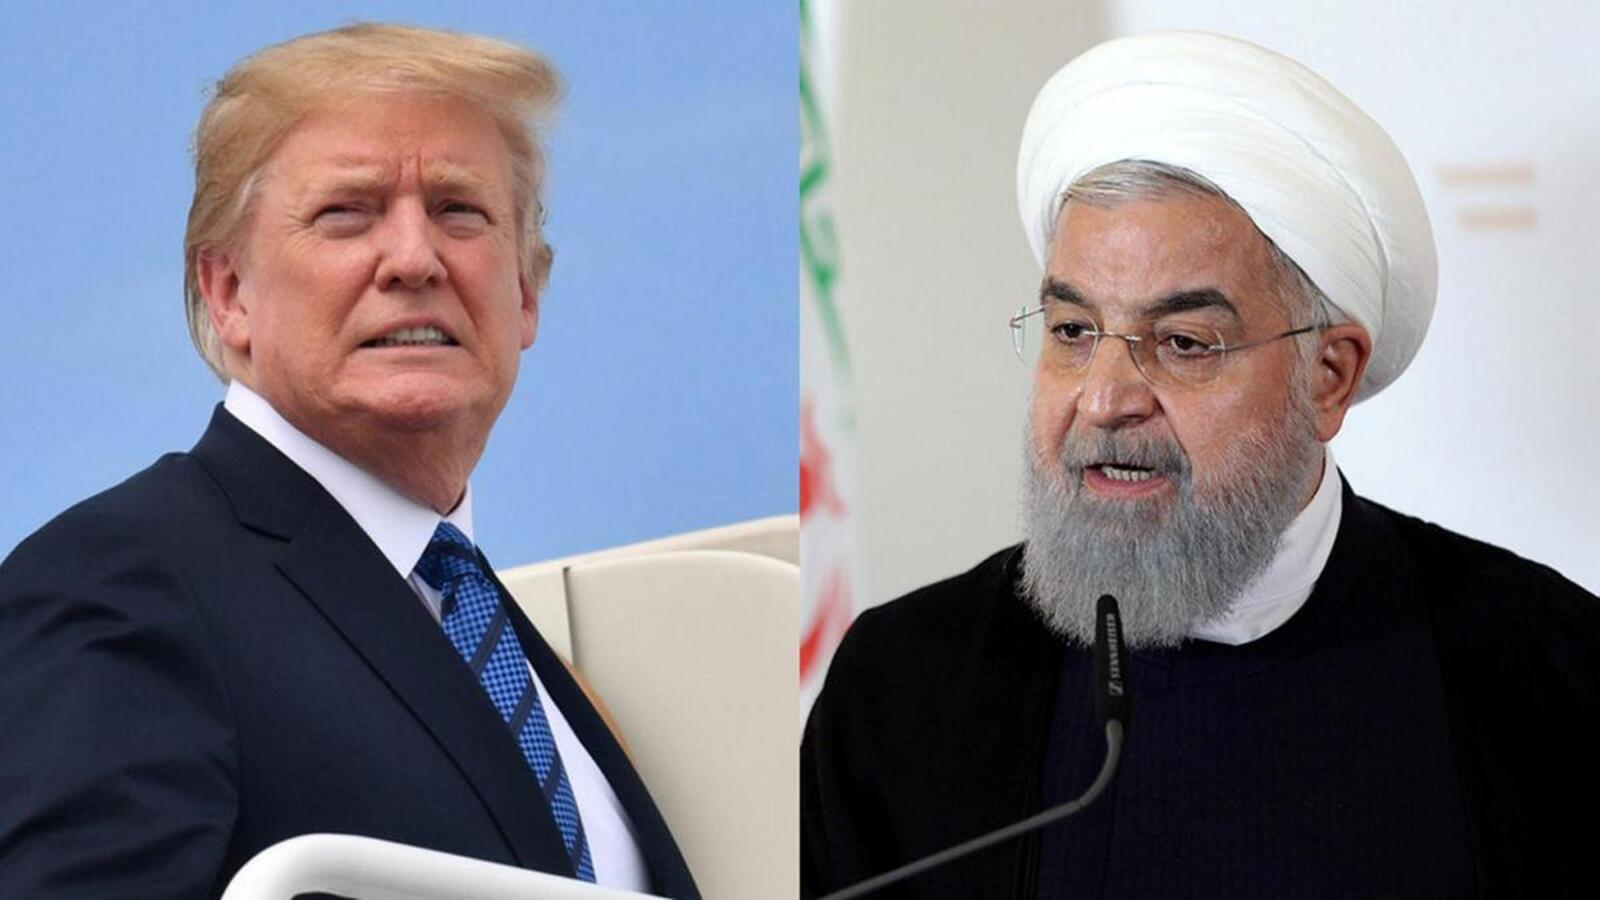 United States vs Iran Rivalry could lead Every Country into World War 3